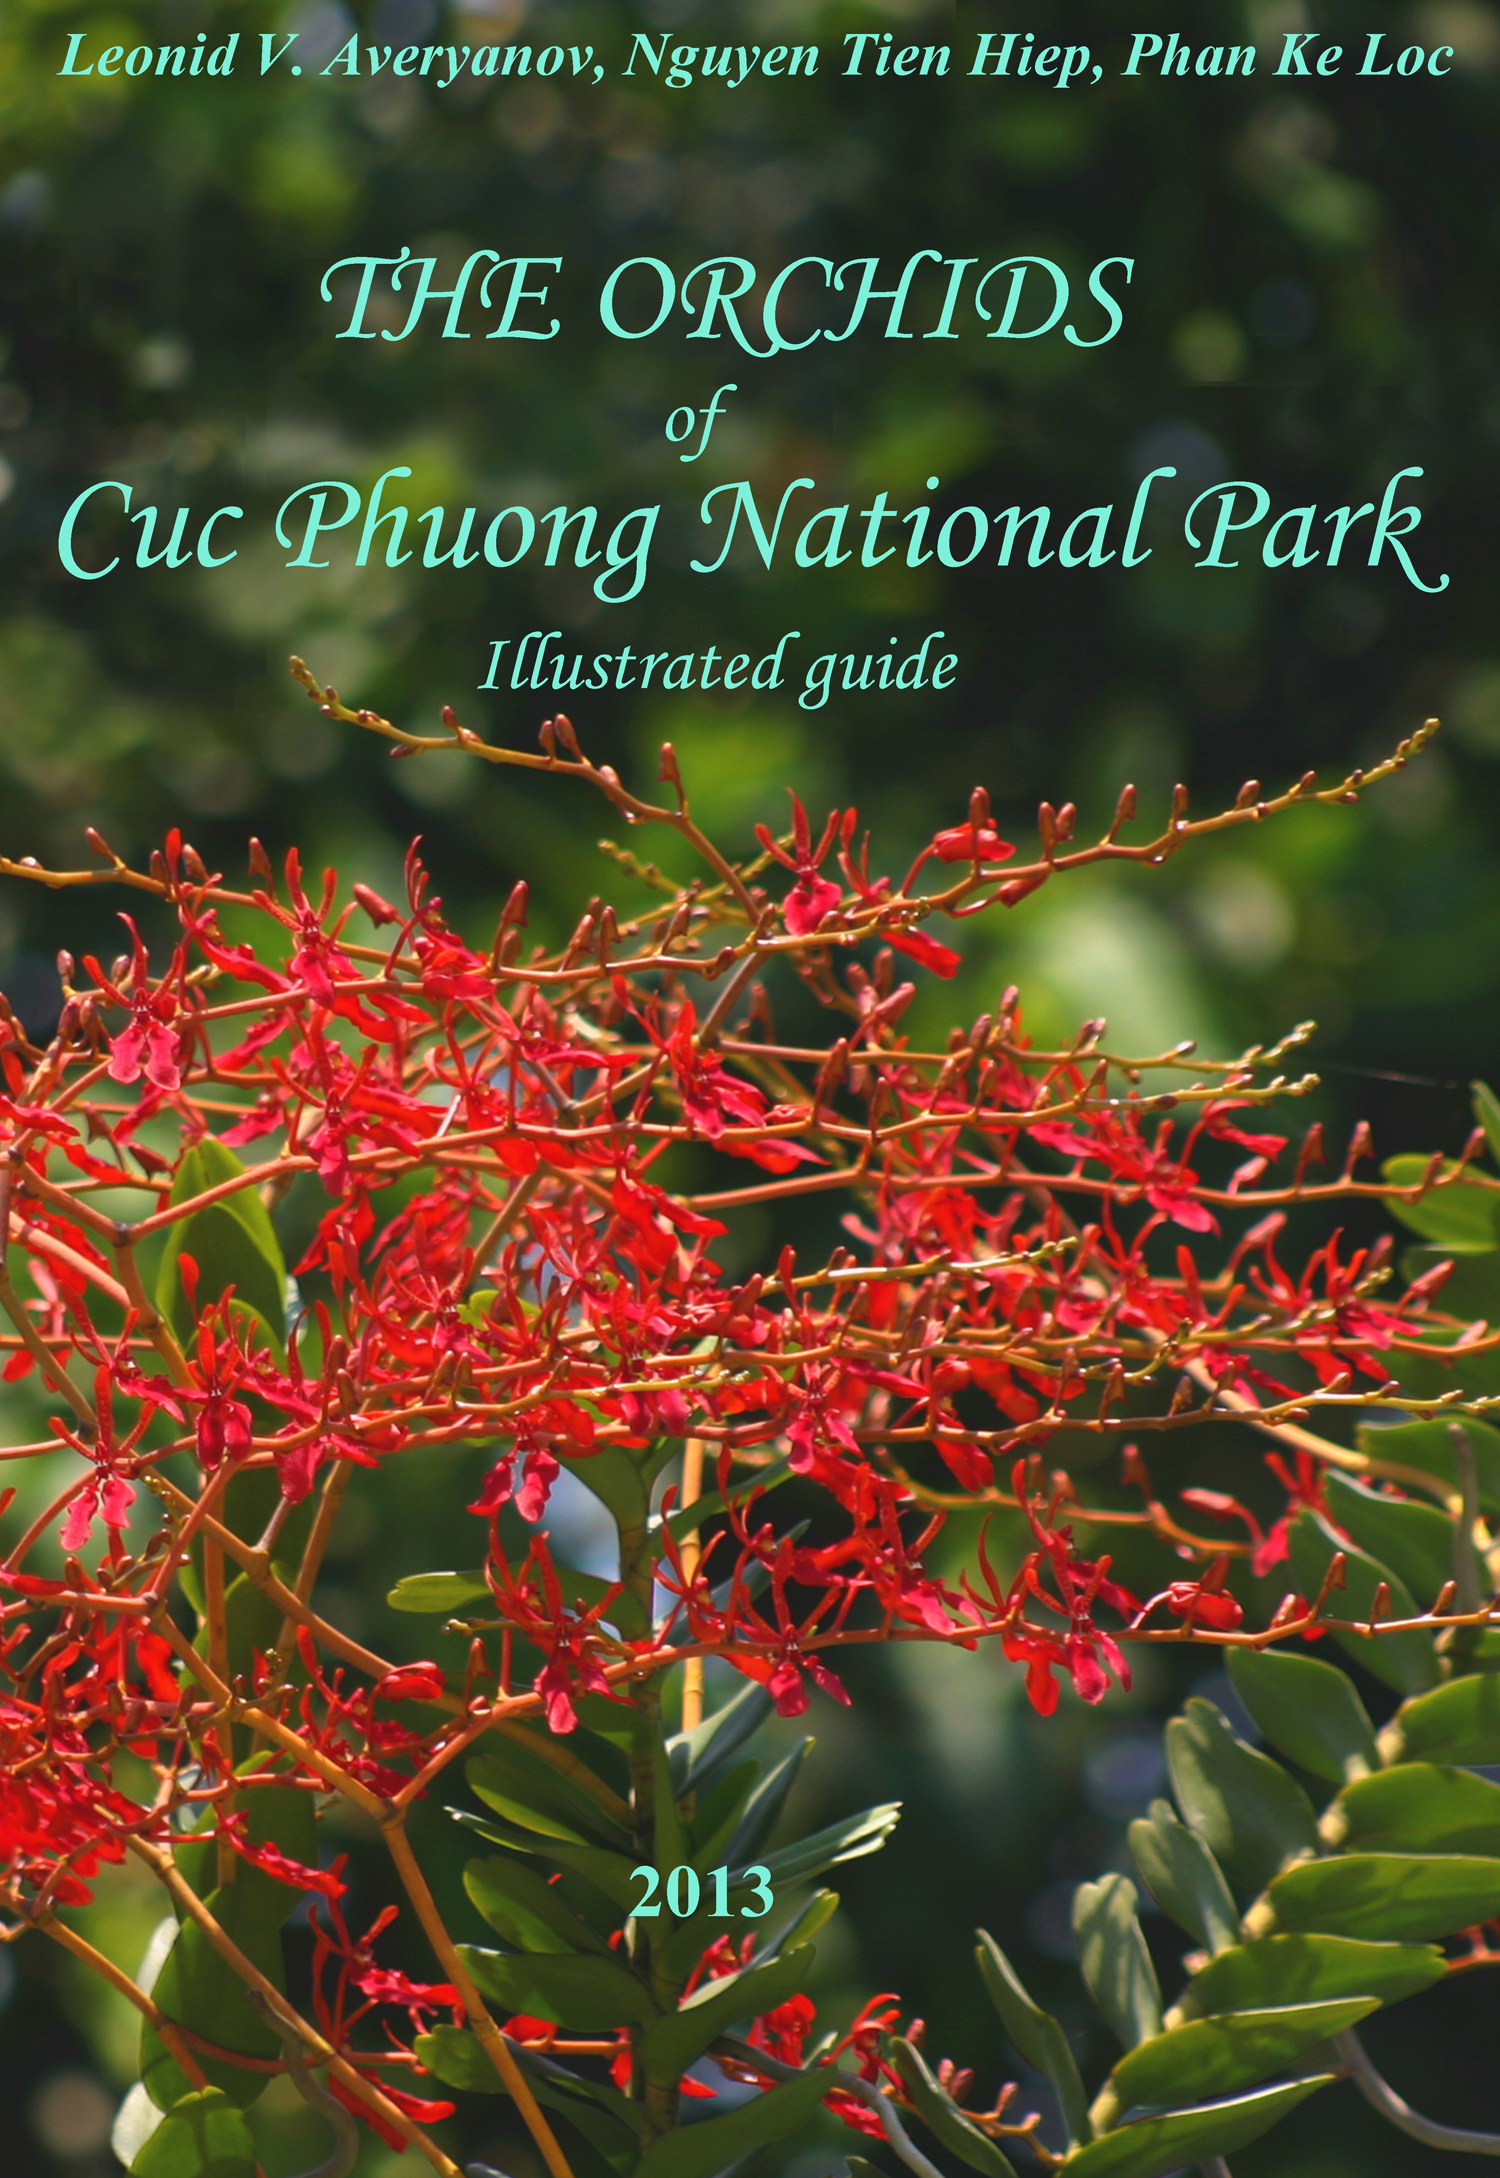 The Orchids of Cuc Phuong National Park - lllustrated Guide